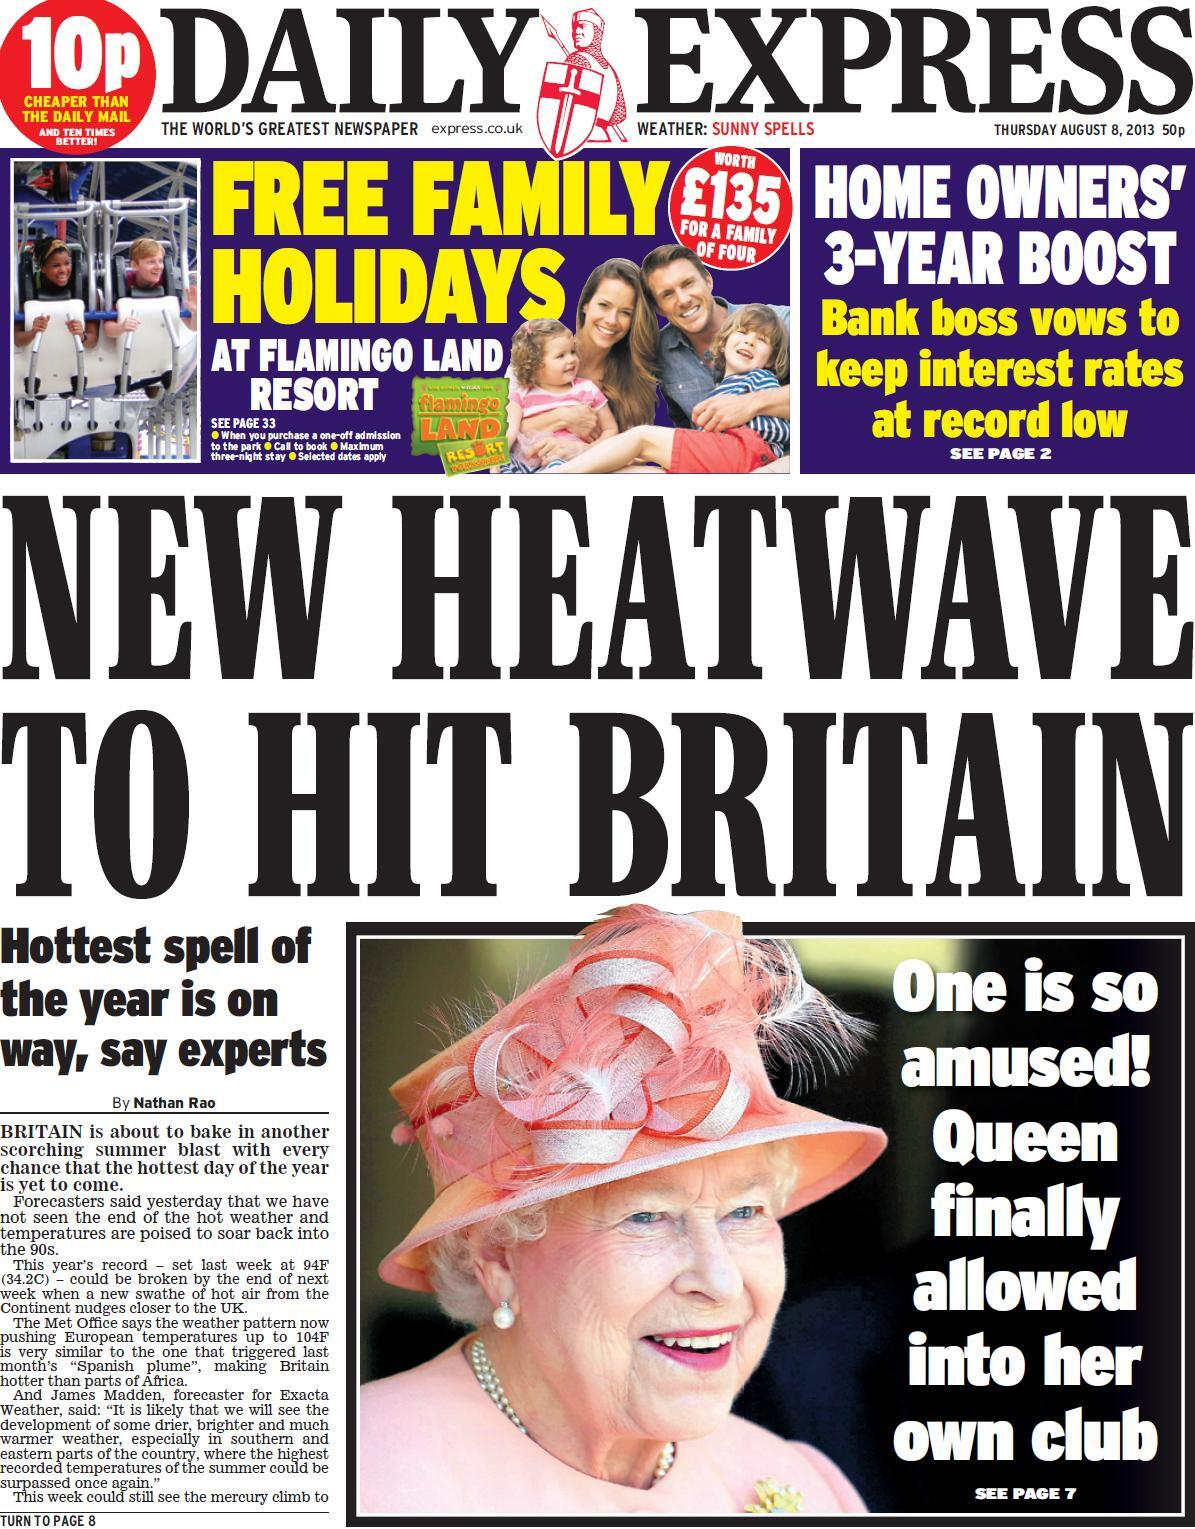 YES!! ?@BBCNews: Daily Express front page - 'New heatwave to hit Britain' http://t.co/WVawYZxPwi #TomorrowsPapersToday #BBCpapers